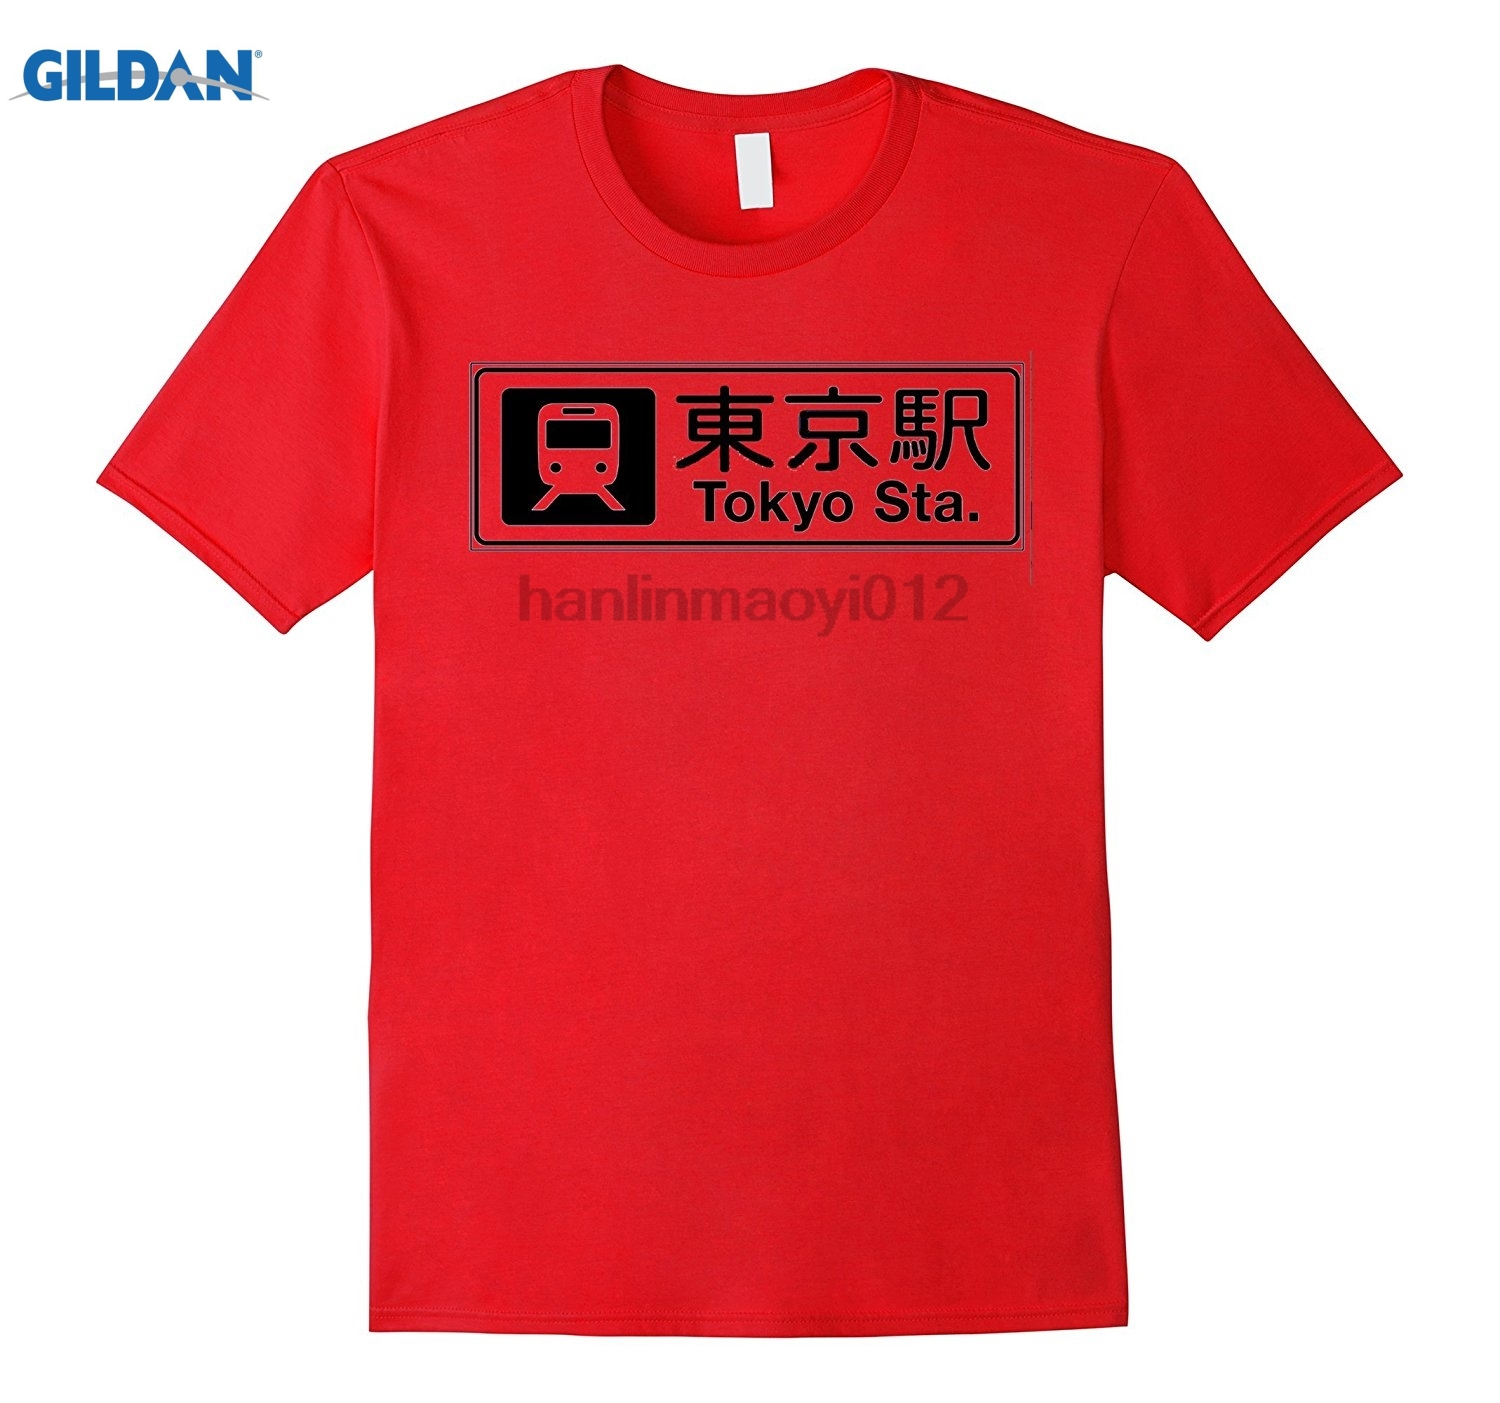 GILDAN Dicky Ticker Tokyo City Station T-shirt Train Womens T-shirt